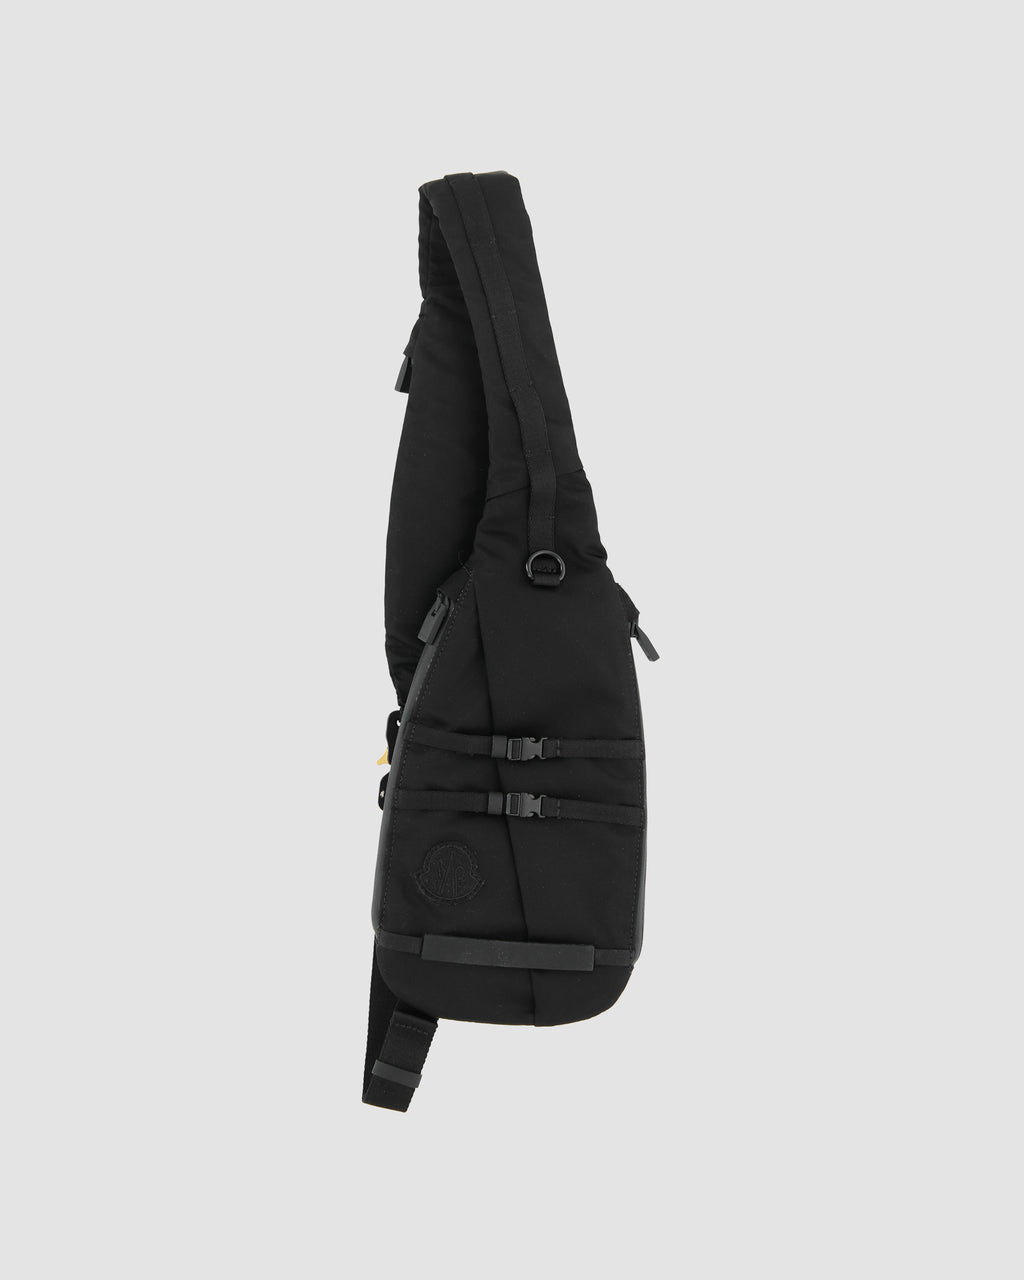 1017 ALYX 9SM | MONCLER CROSSBODY BAG | Backpack | BACKPACKS, BLACK, Google Shopping, Man, Moncler, S20, UNISEX, Woman